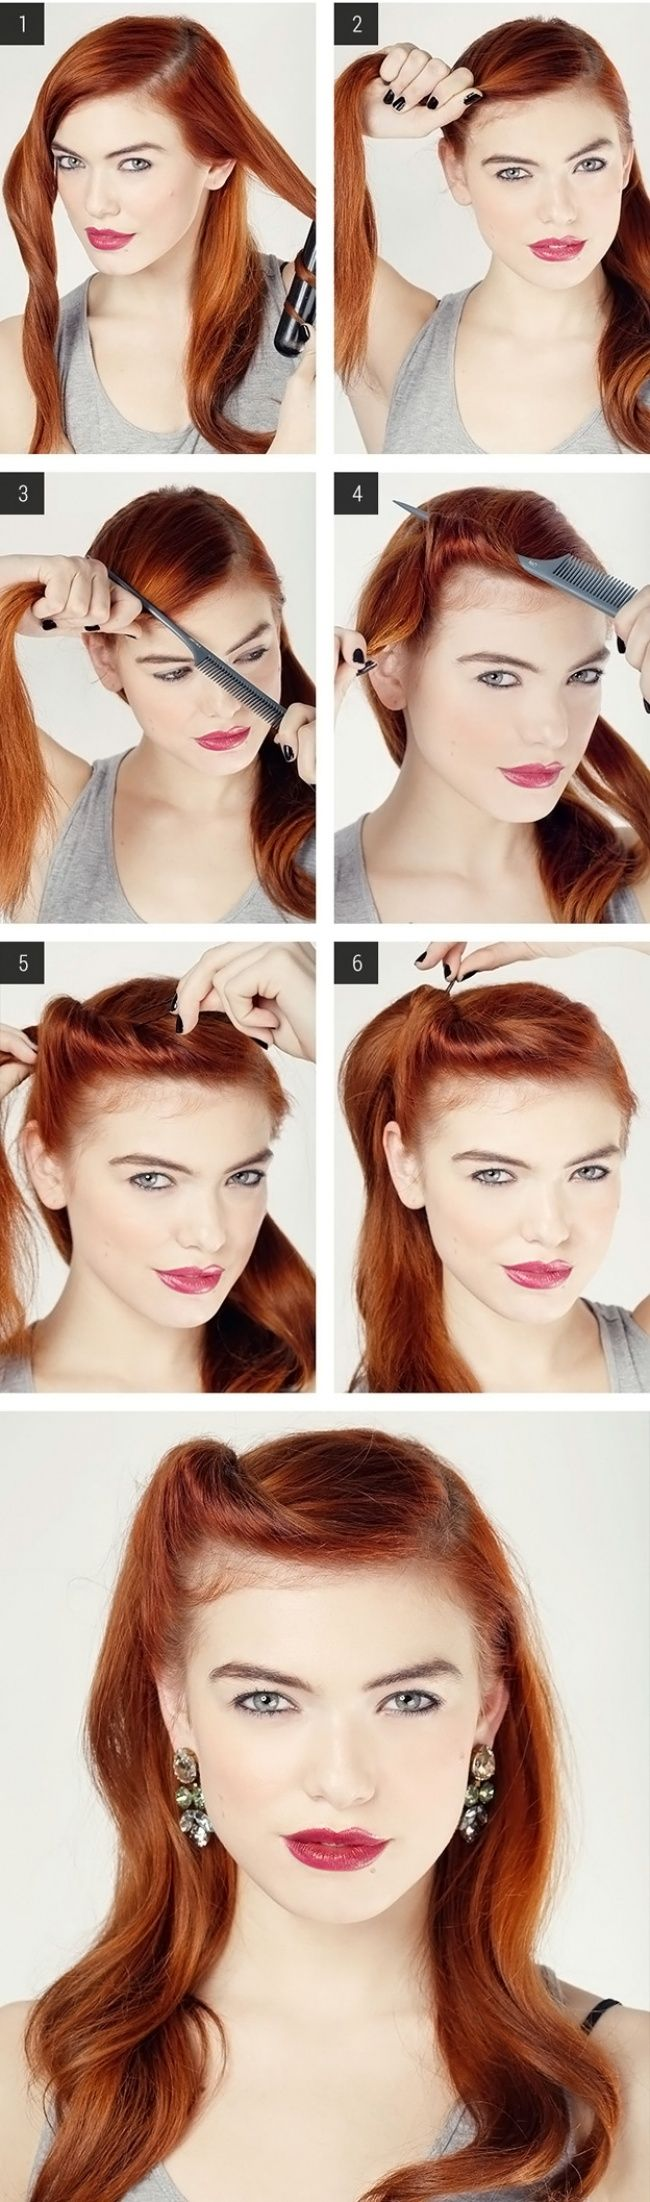 best 25+ bobby pin hairstyles ideas on pinterest | bobby pins